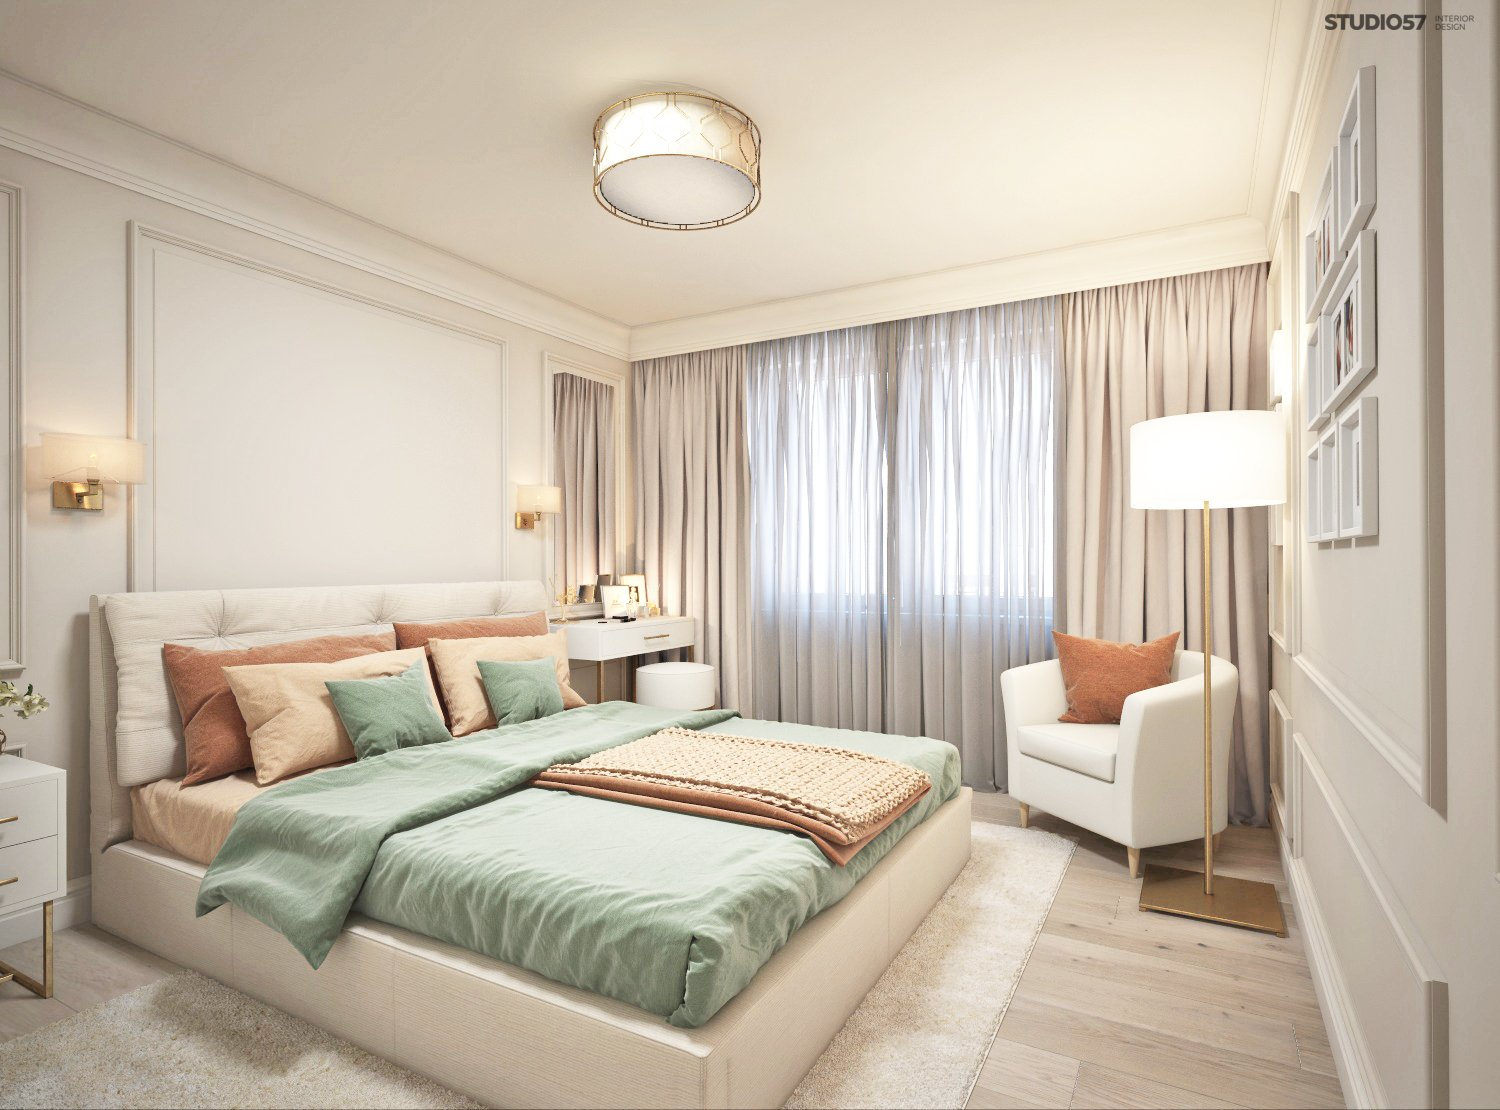 Interior of a modern bedroom photo